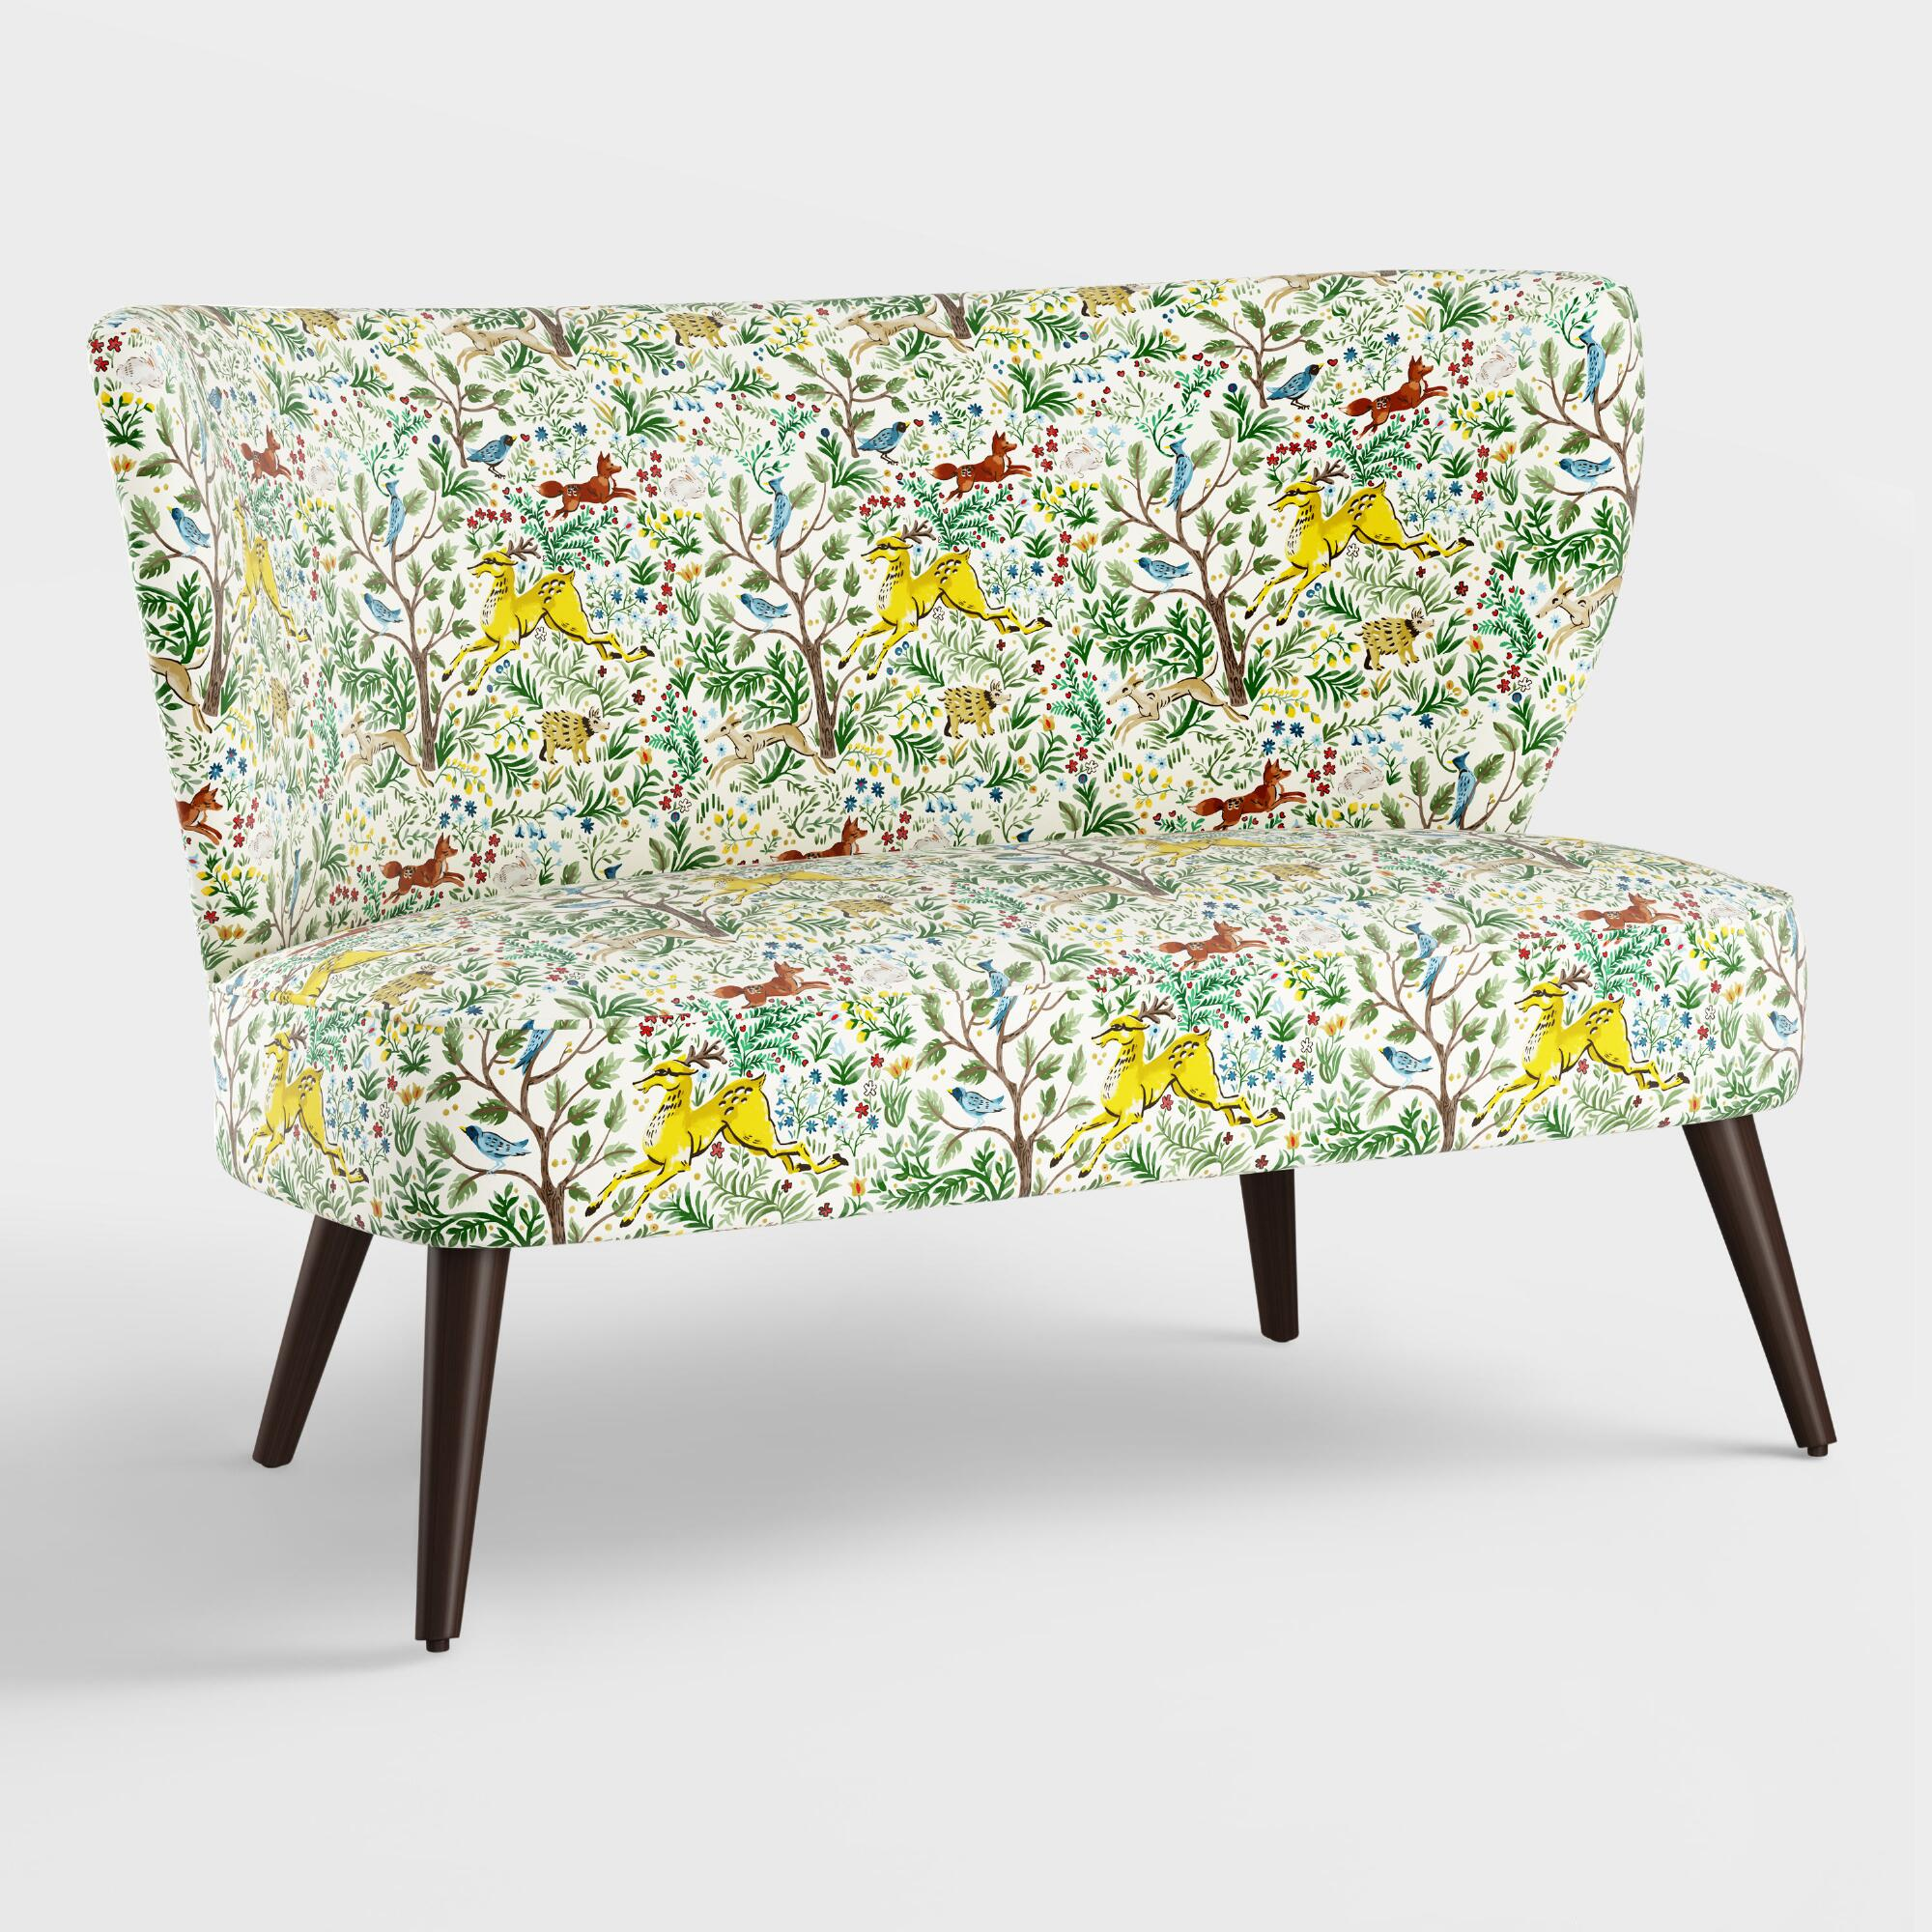 Forest Frolic Kenway Upholstered Loveseat: Multi - Fabric by World Market